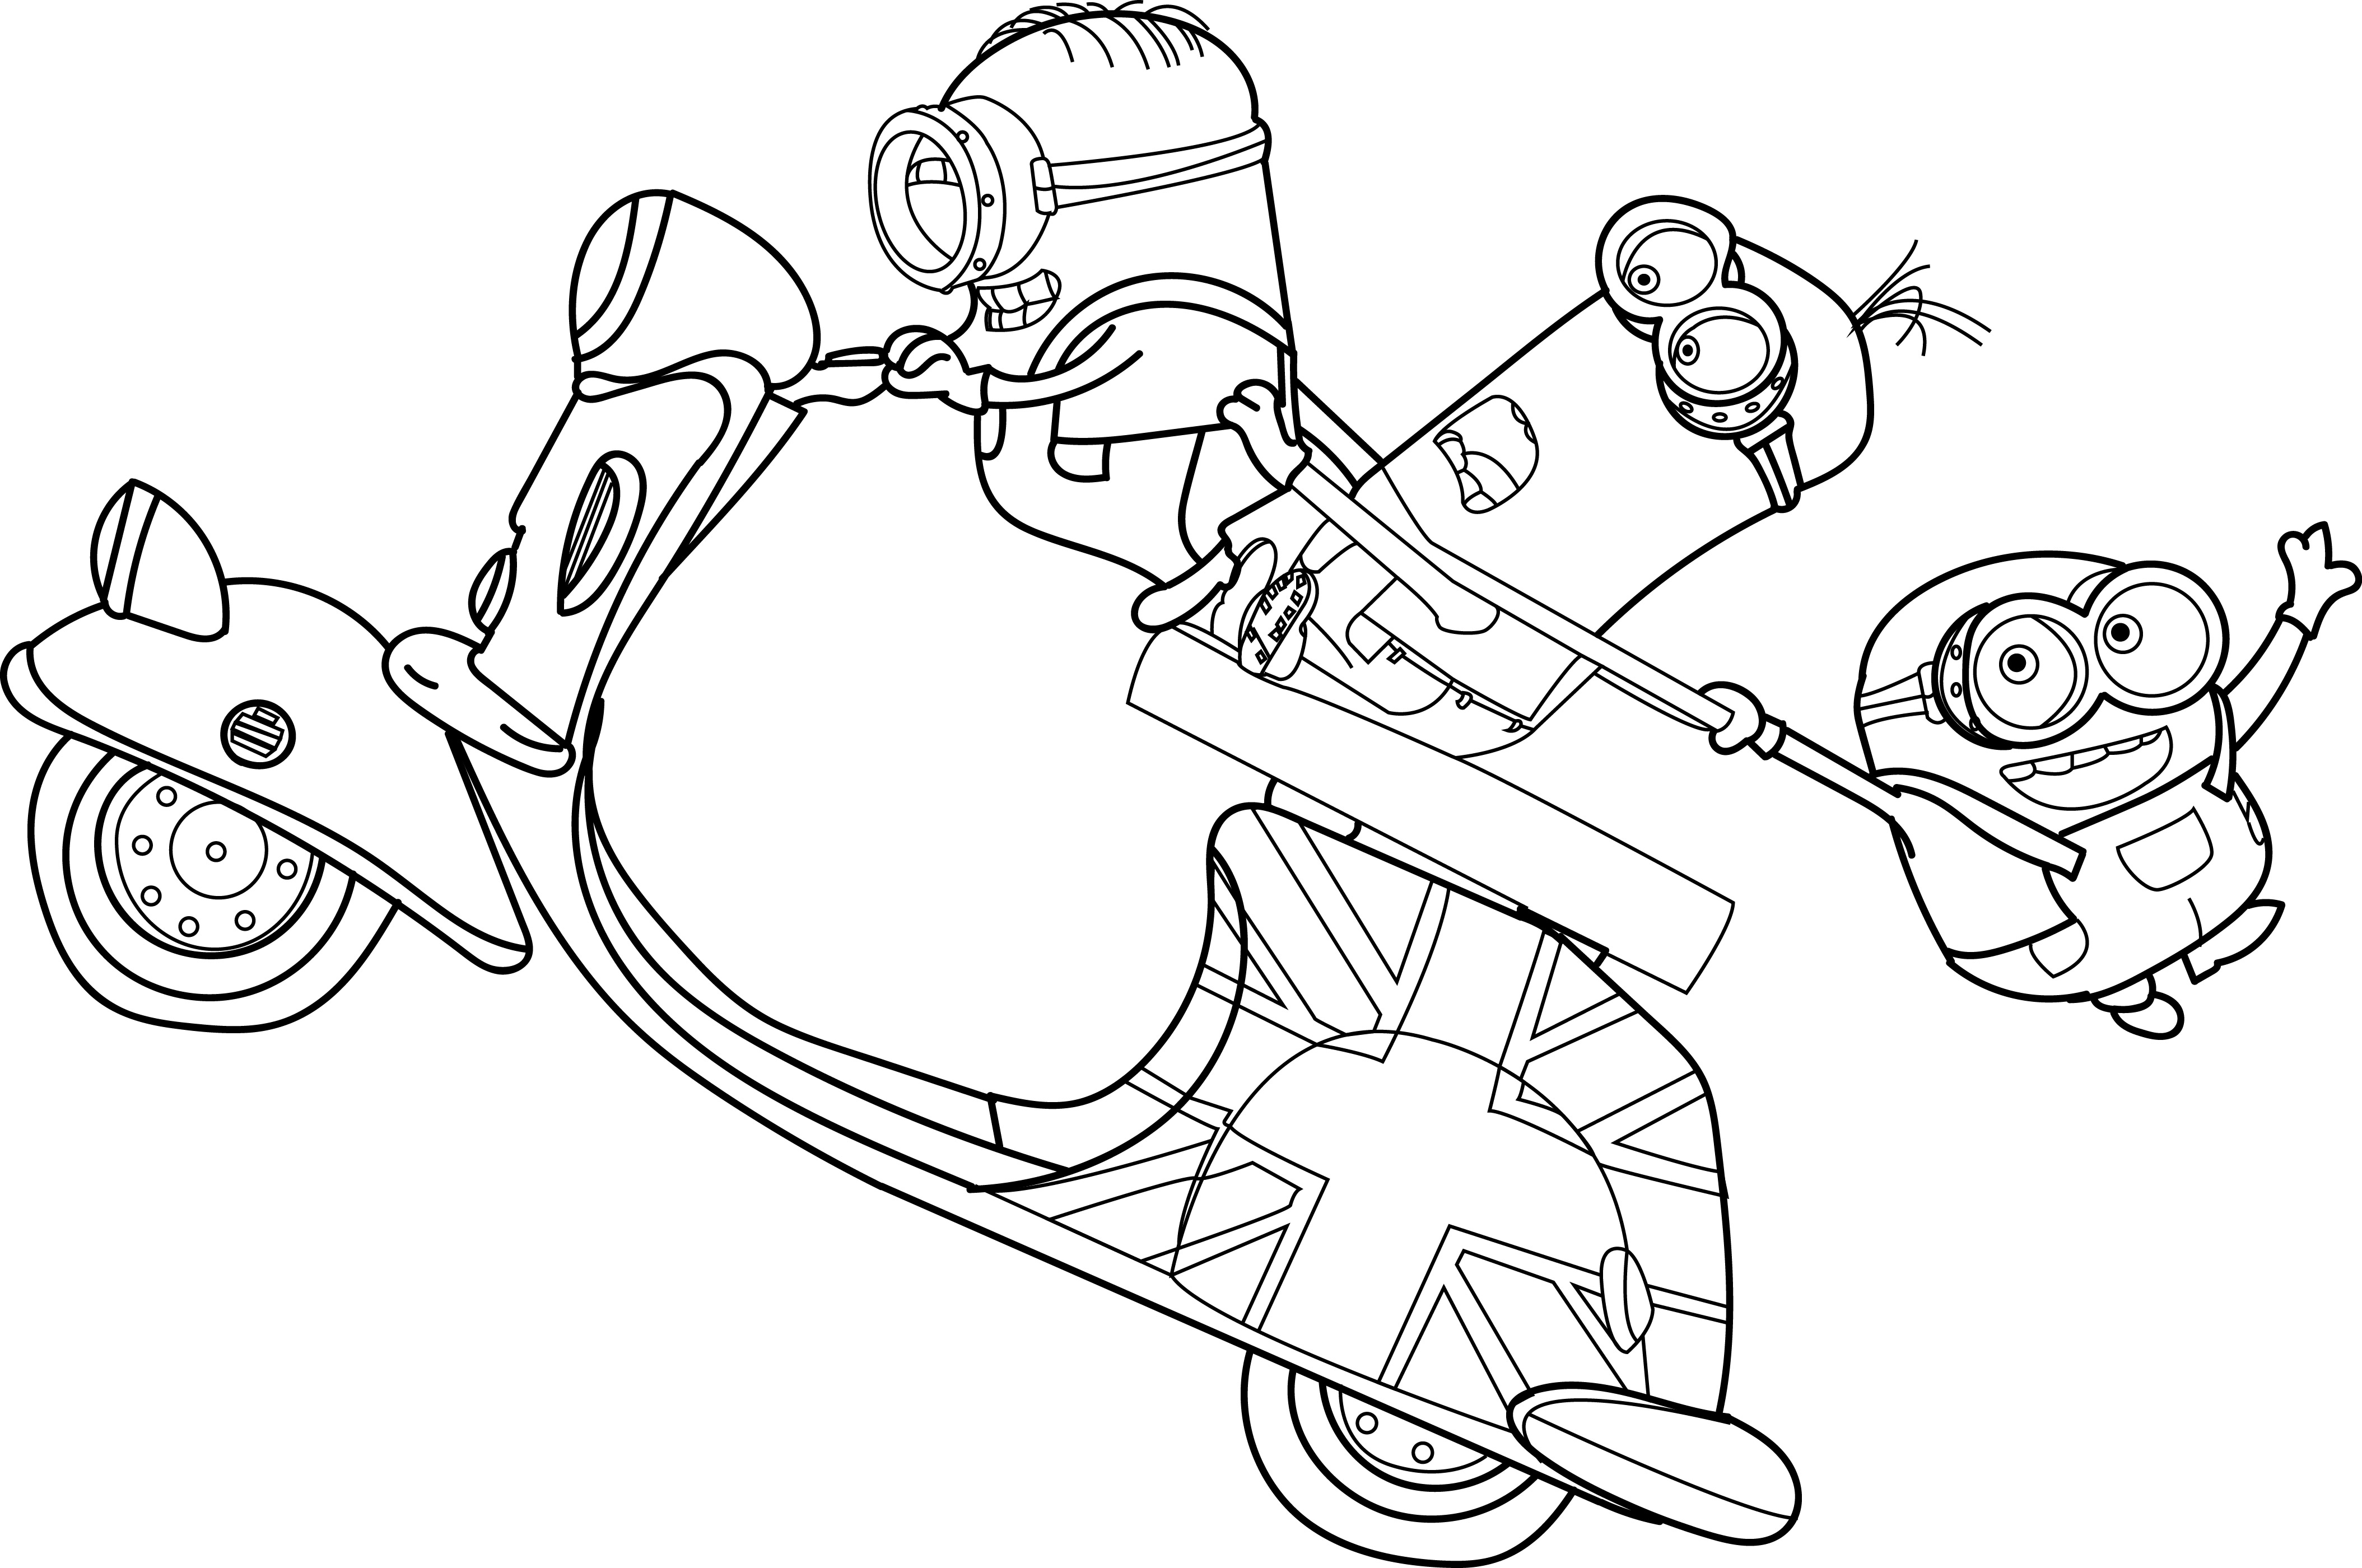 Minions Drive Bike Movie Funny Coloring Page